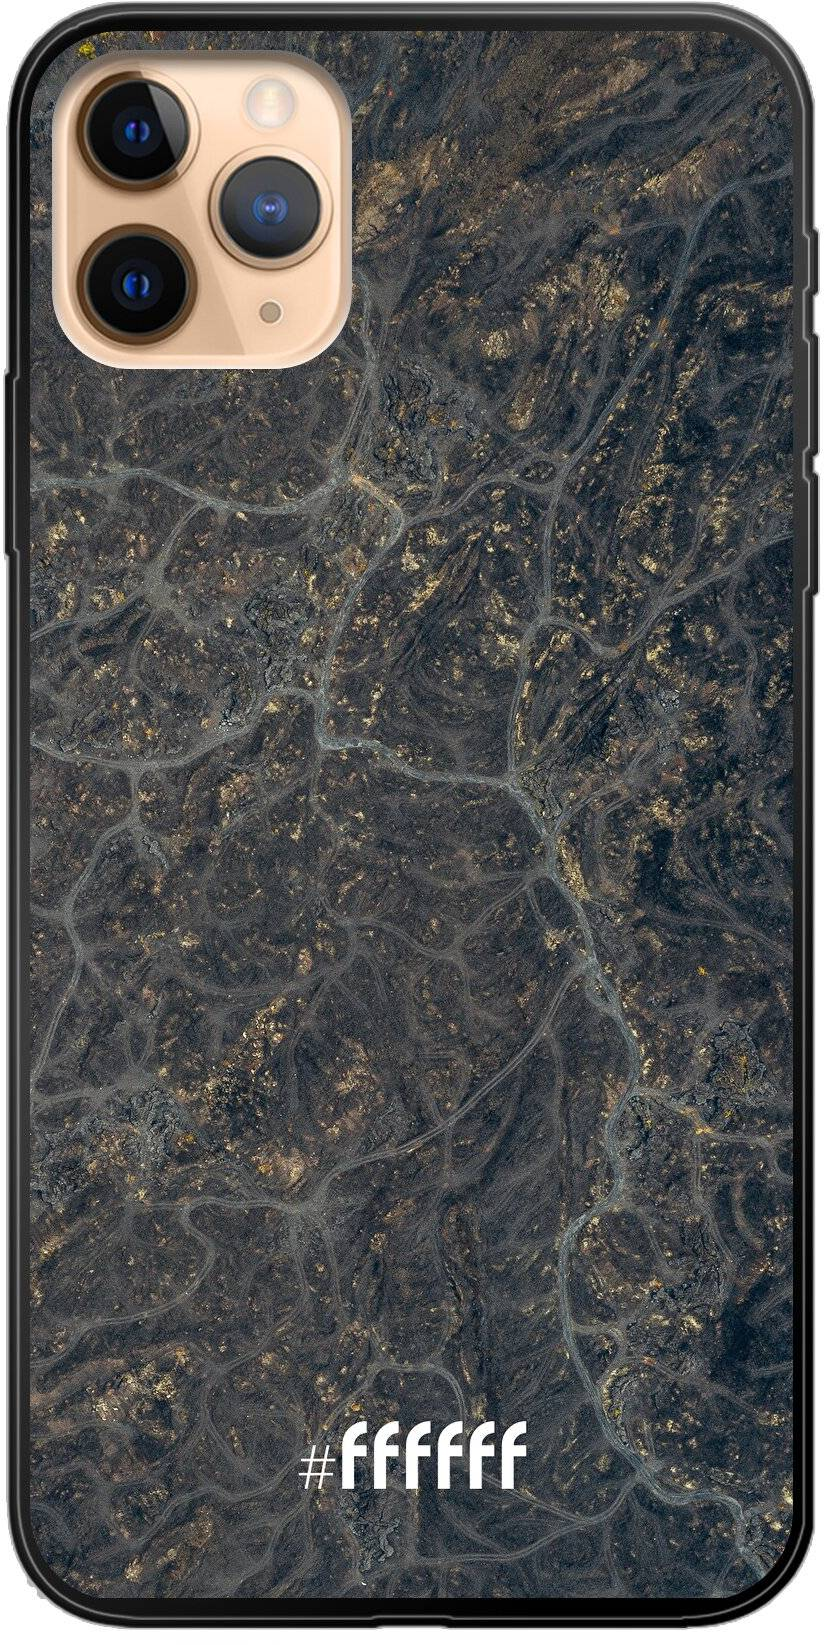 Golden Glitter Marble iPhone 11 Pro Max